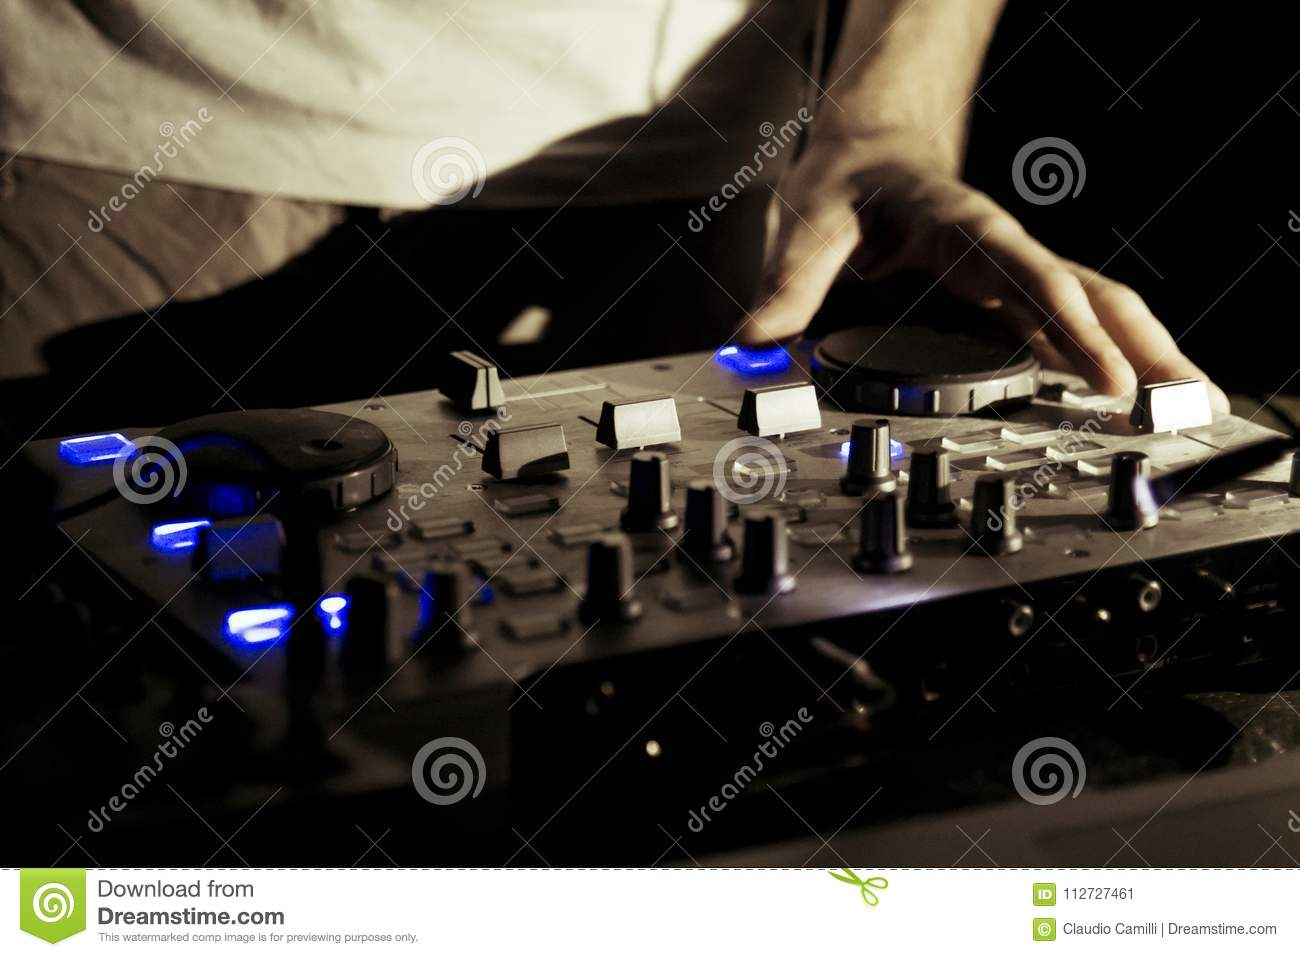 Dj Work In Disco Music Live Event Stock Image - Image of